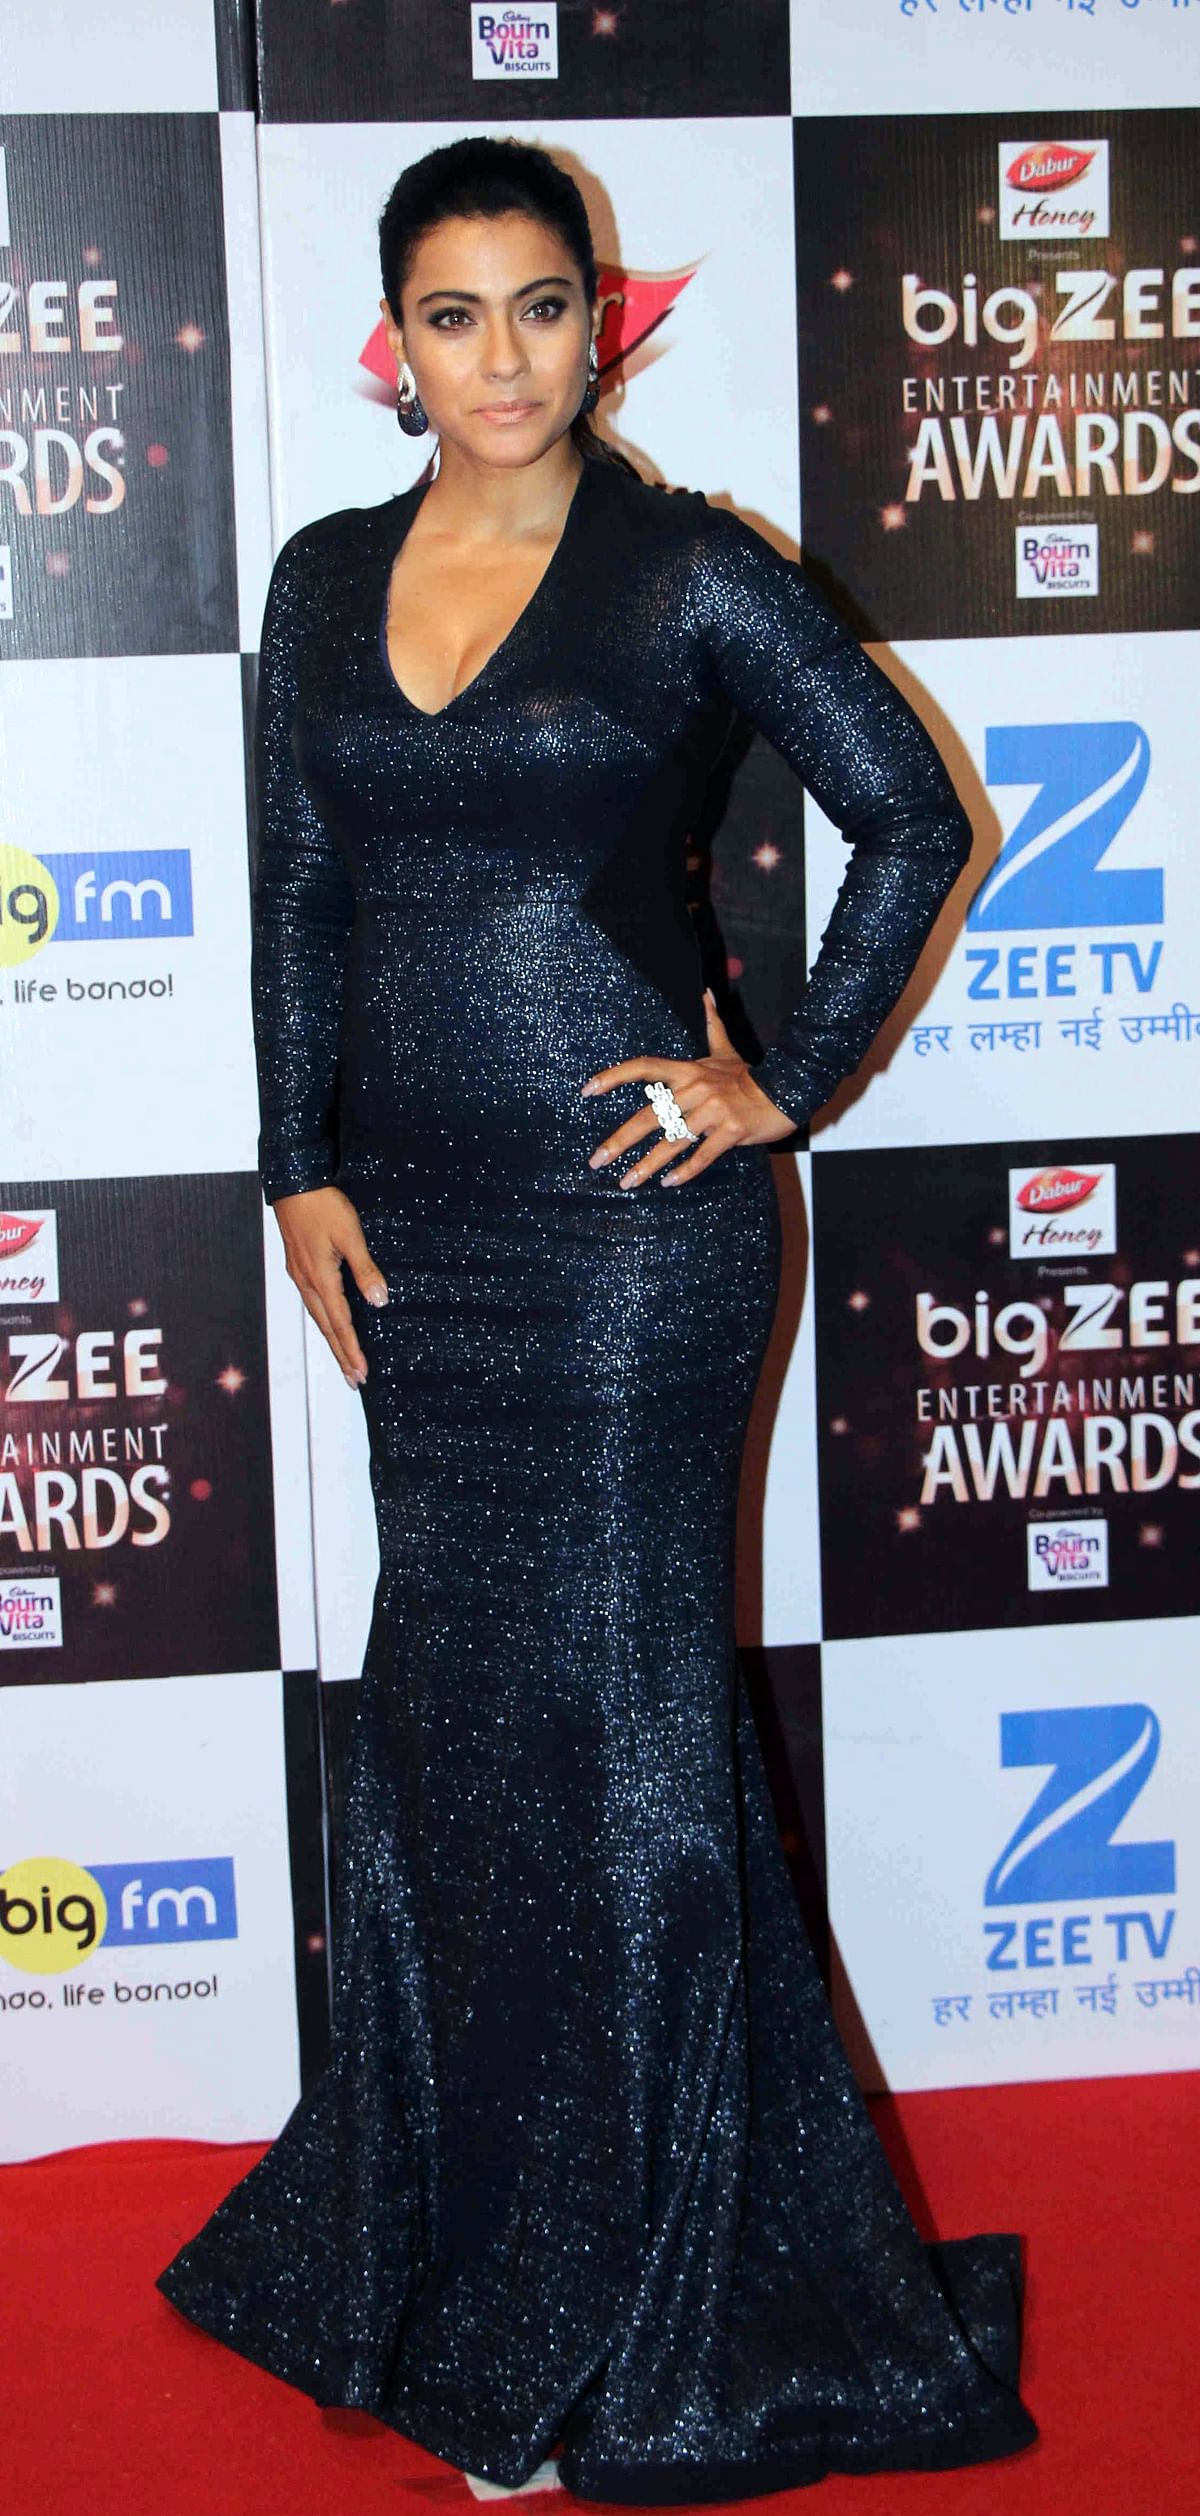 In this photograph taken on July 29, 2017, Indian Bollywood actress Kajol Devgan attends the BIG ZEE Entertainment Awards 2017 ceremony in Mumbai. / AFP PHOTO / STR